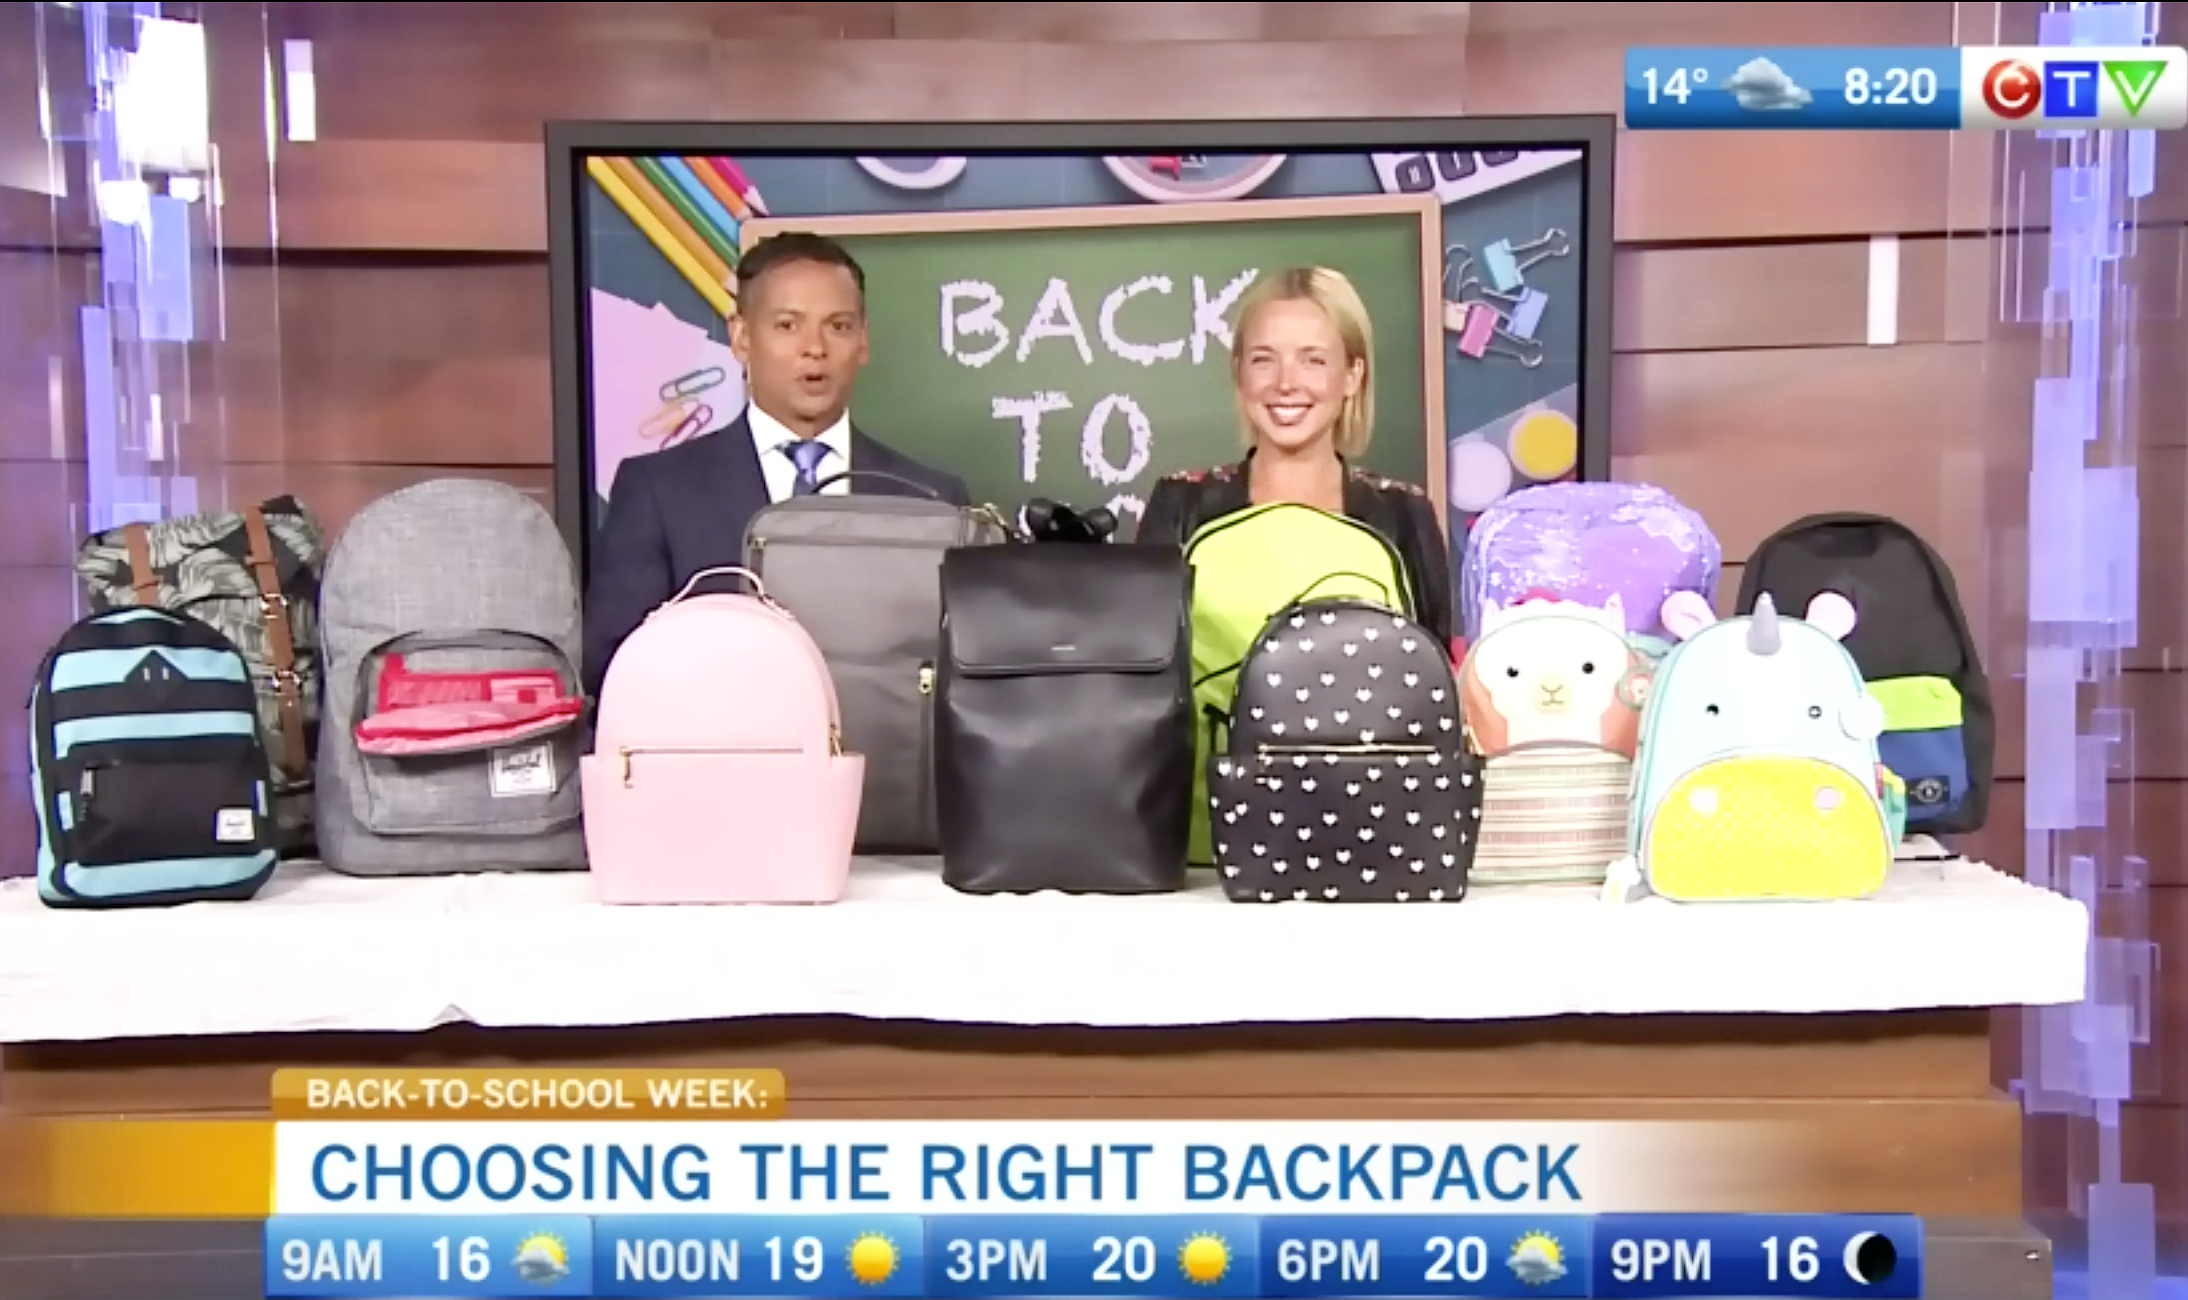 CTV Morning Live: The best backpacks for Back To School